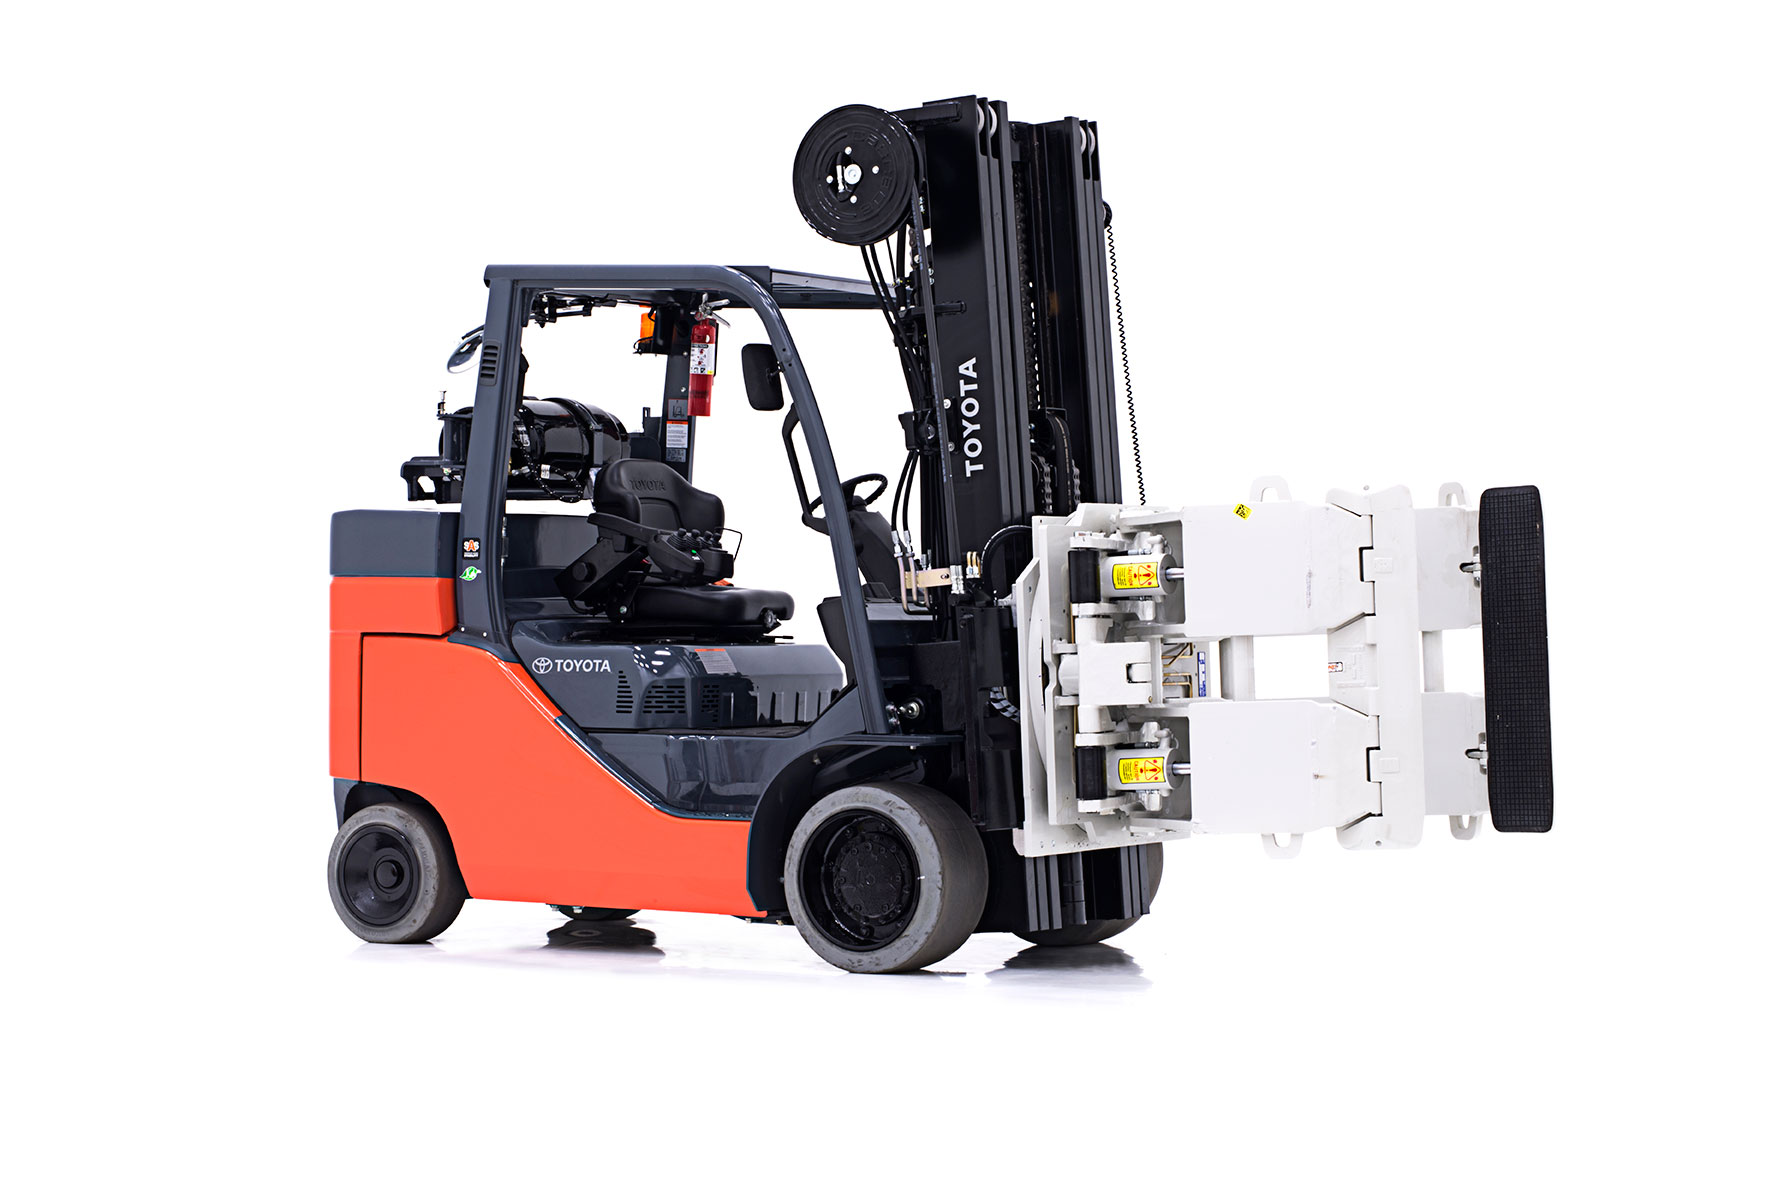 Forklift Size Decisions: What Forklift Capacity Do I Need